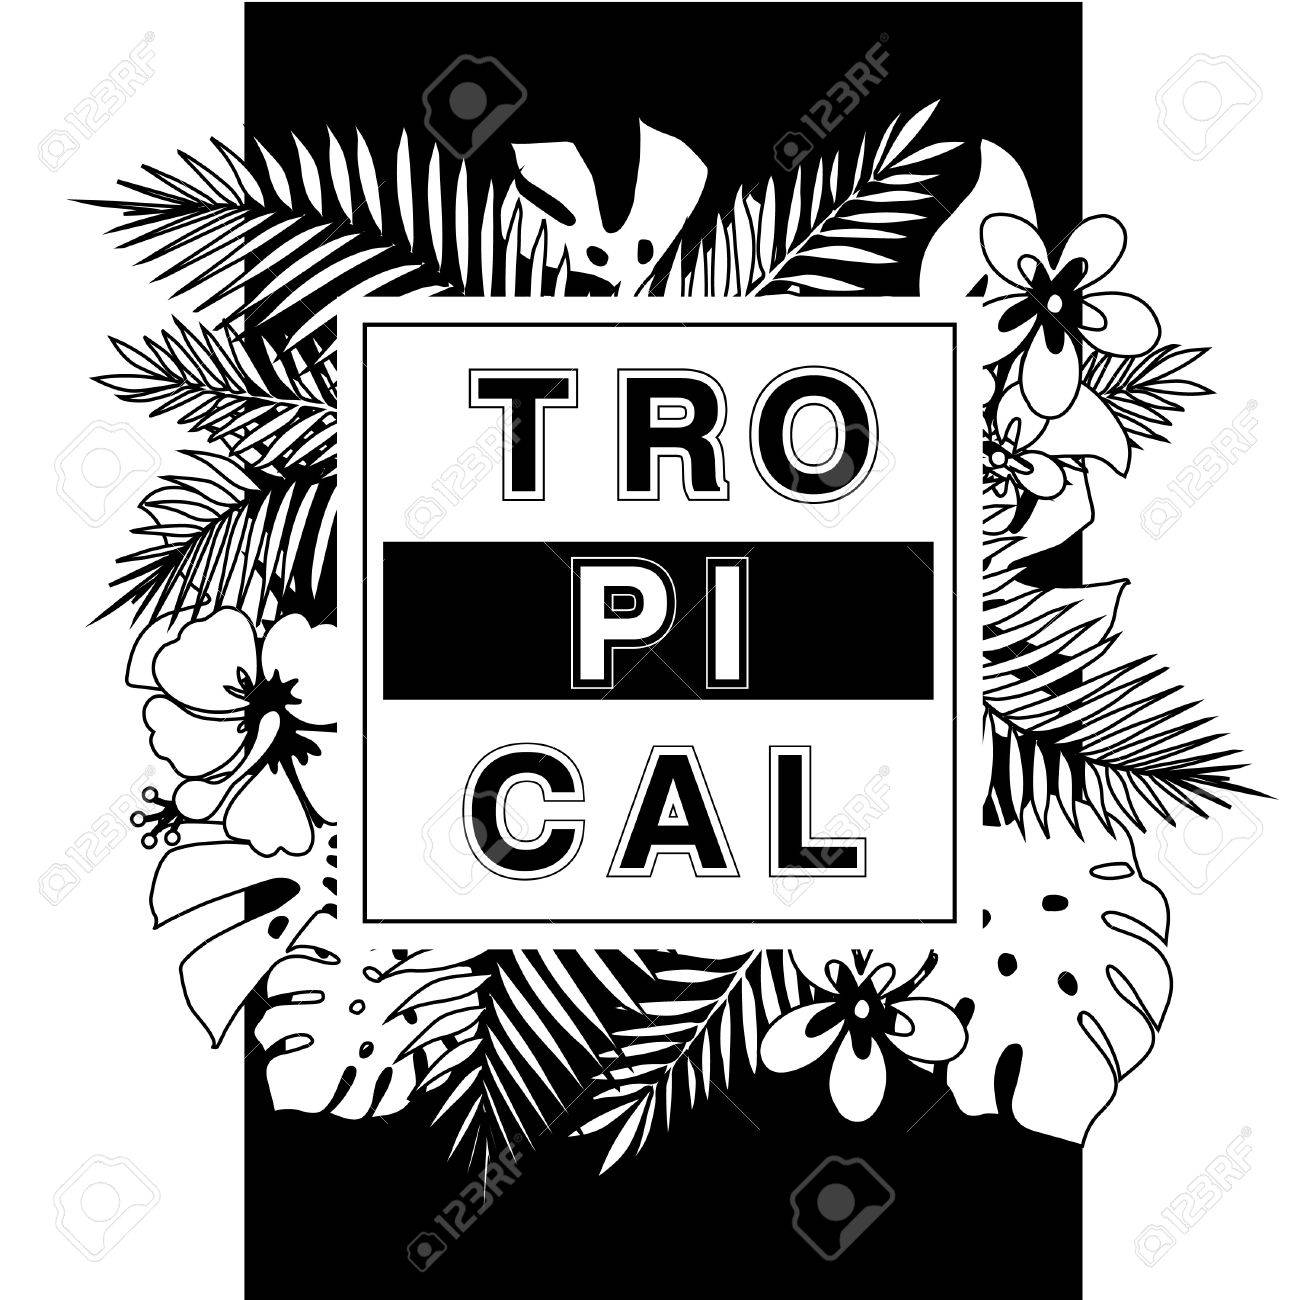 Tropical Paradise T Shirt Or Poster Design Print With Palm Leaves Royalty Free Cliparts Vectors And Stock Illustration Image 46754232 Trendy tiger pattern with tropical leaves. tropical paradise t shirt or poster design print with palm leaves